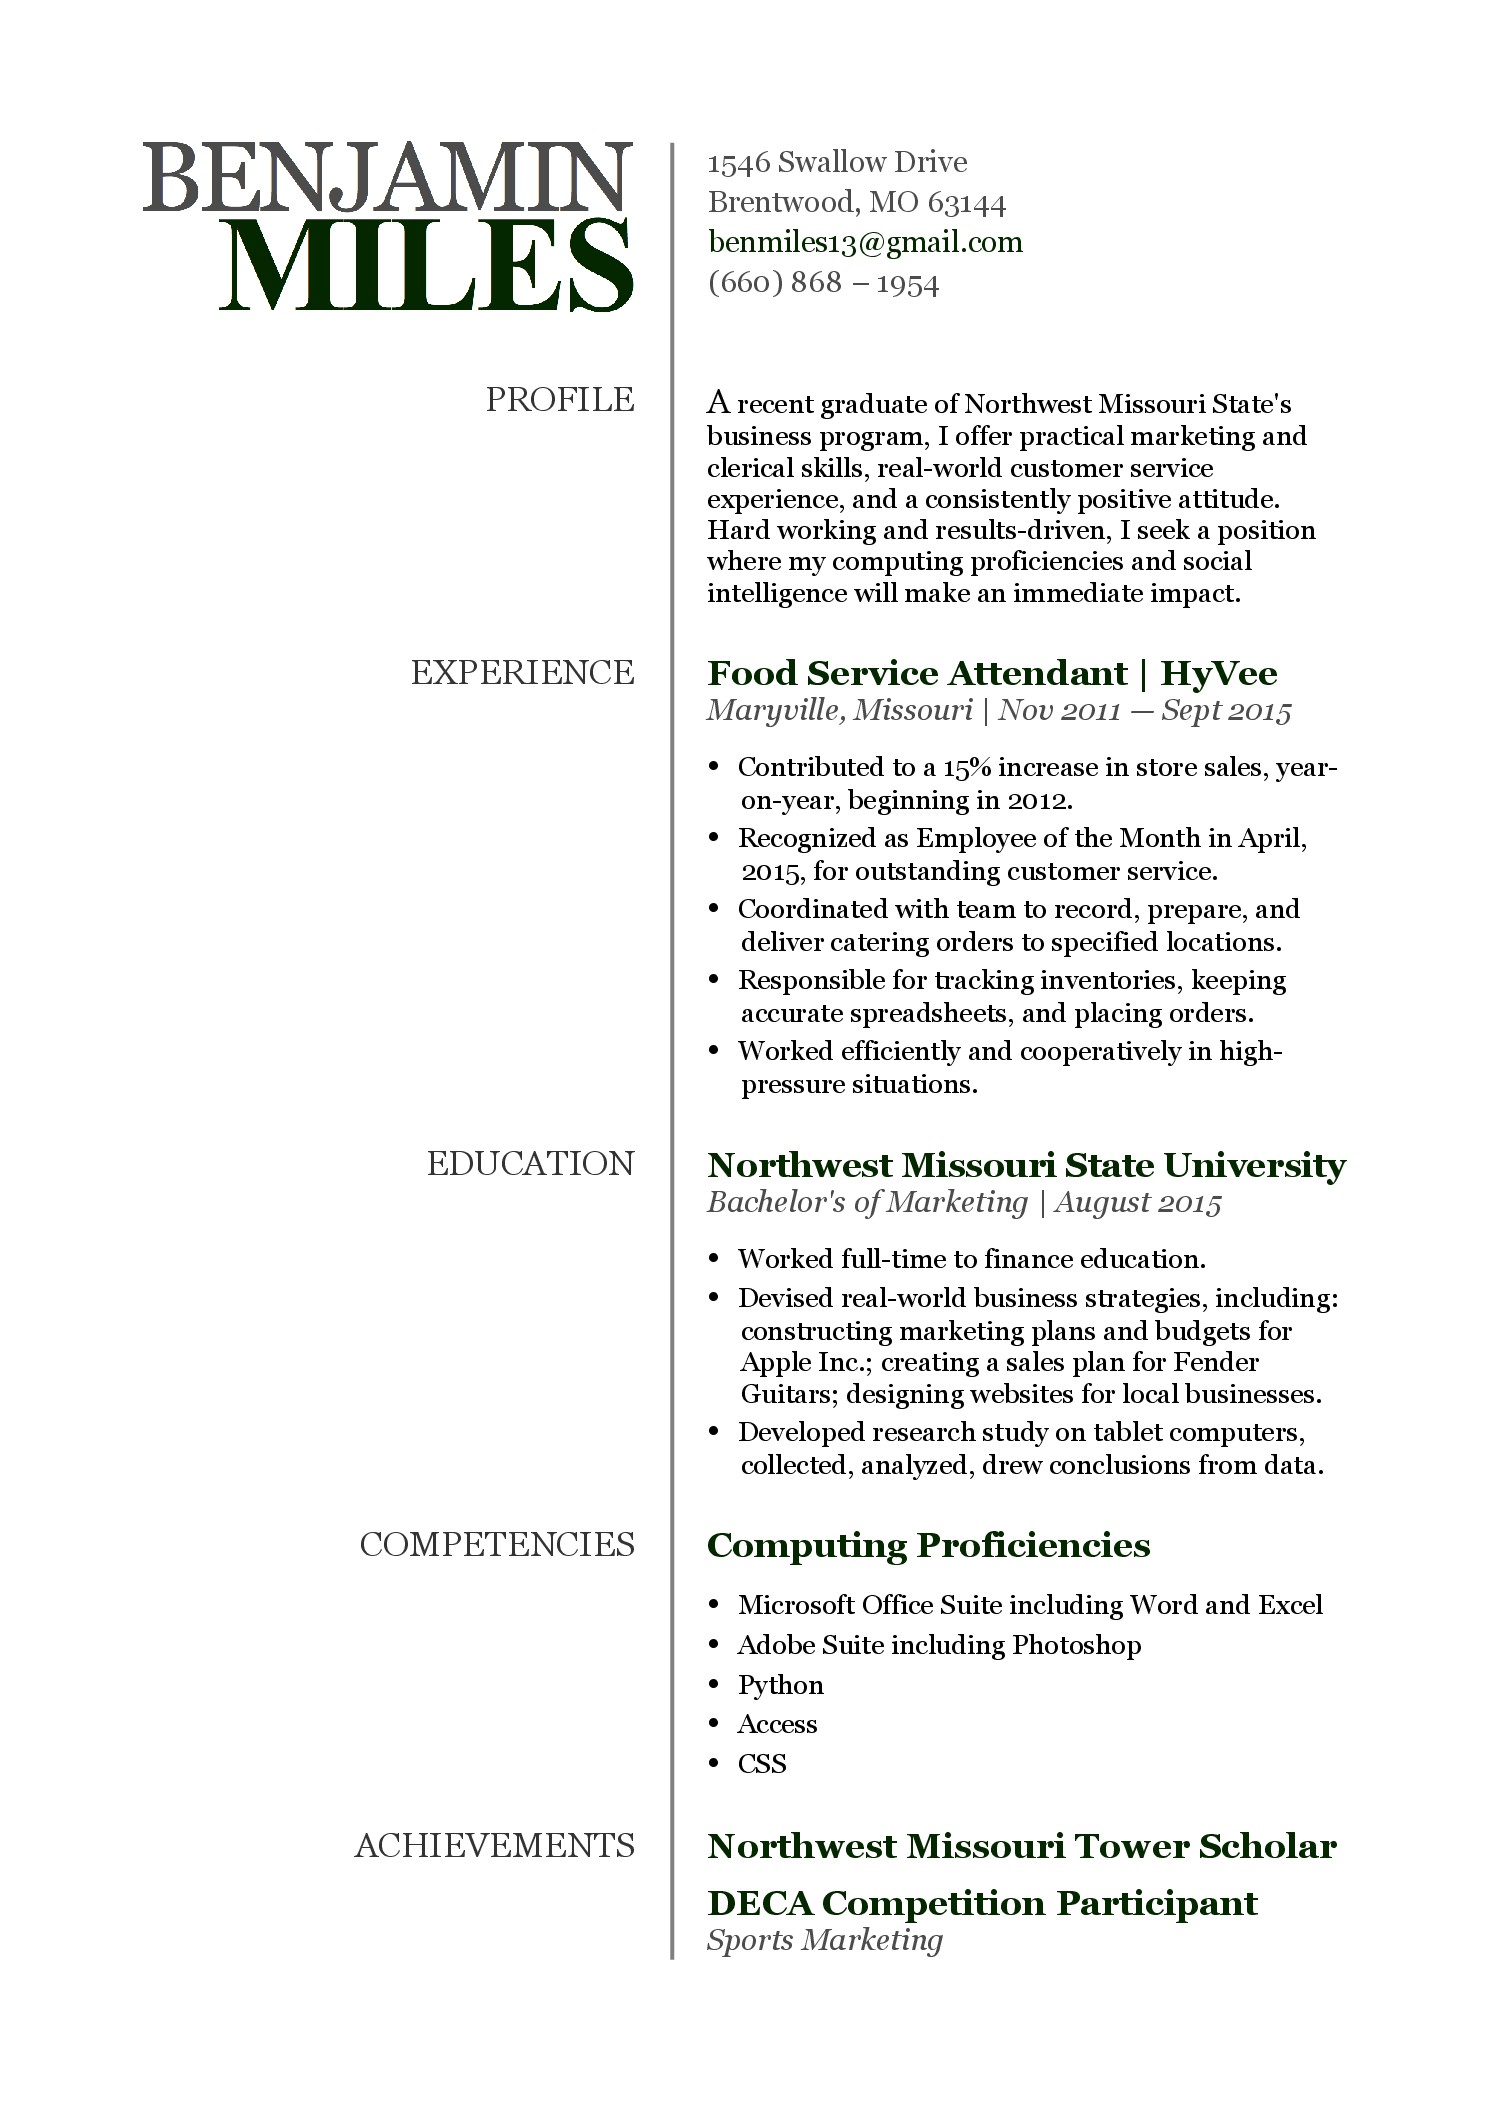 freelance resume examplesfreelance writer resume examplejpgcaption - Freelance Writer Resume Sample